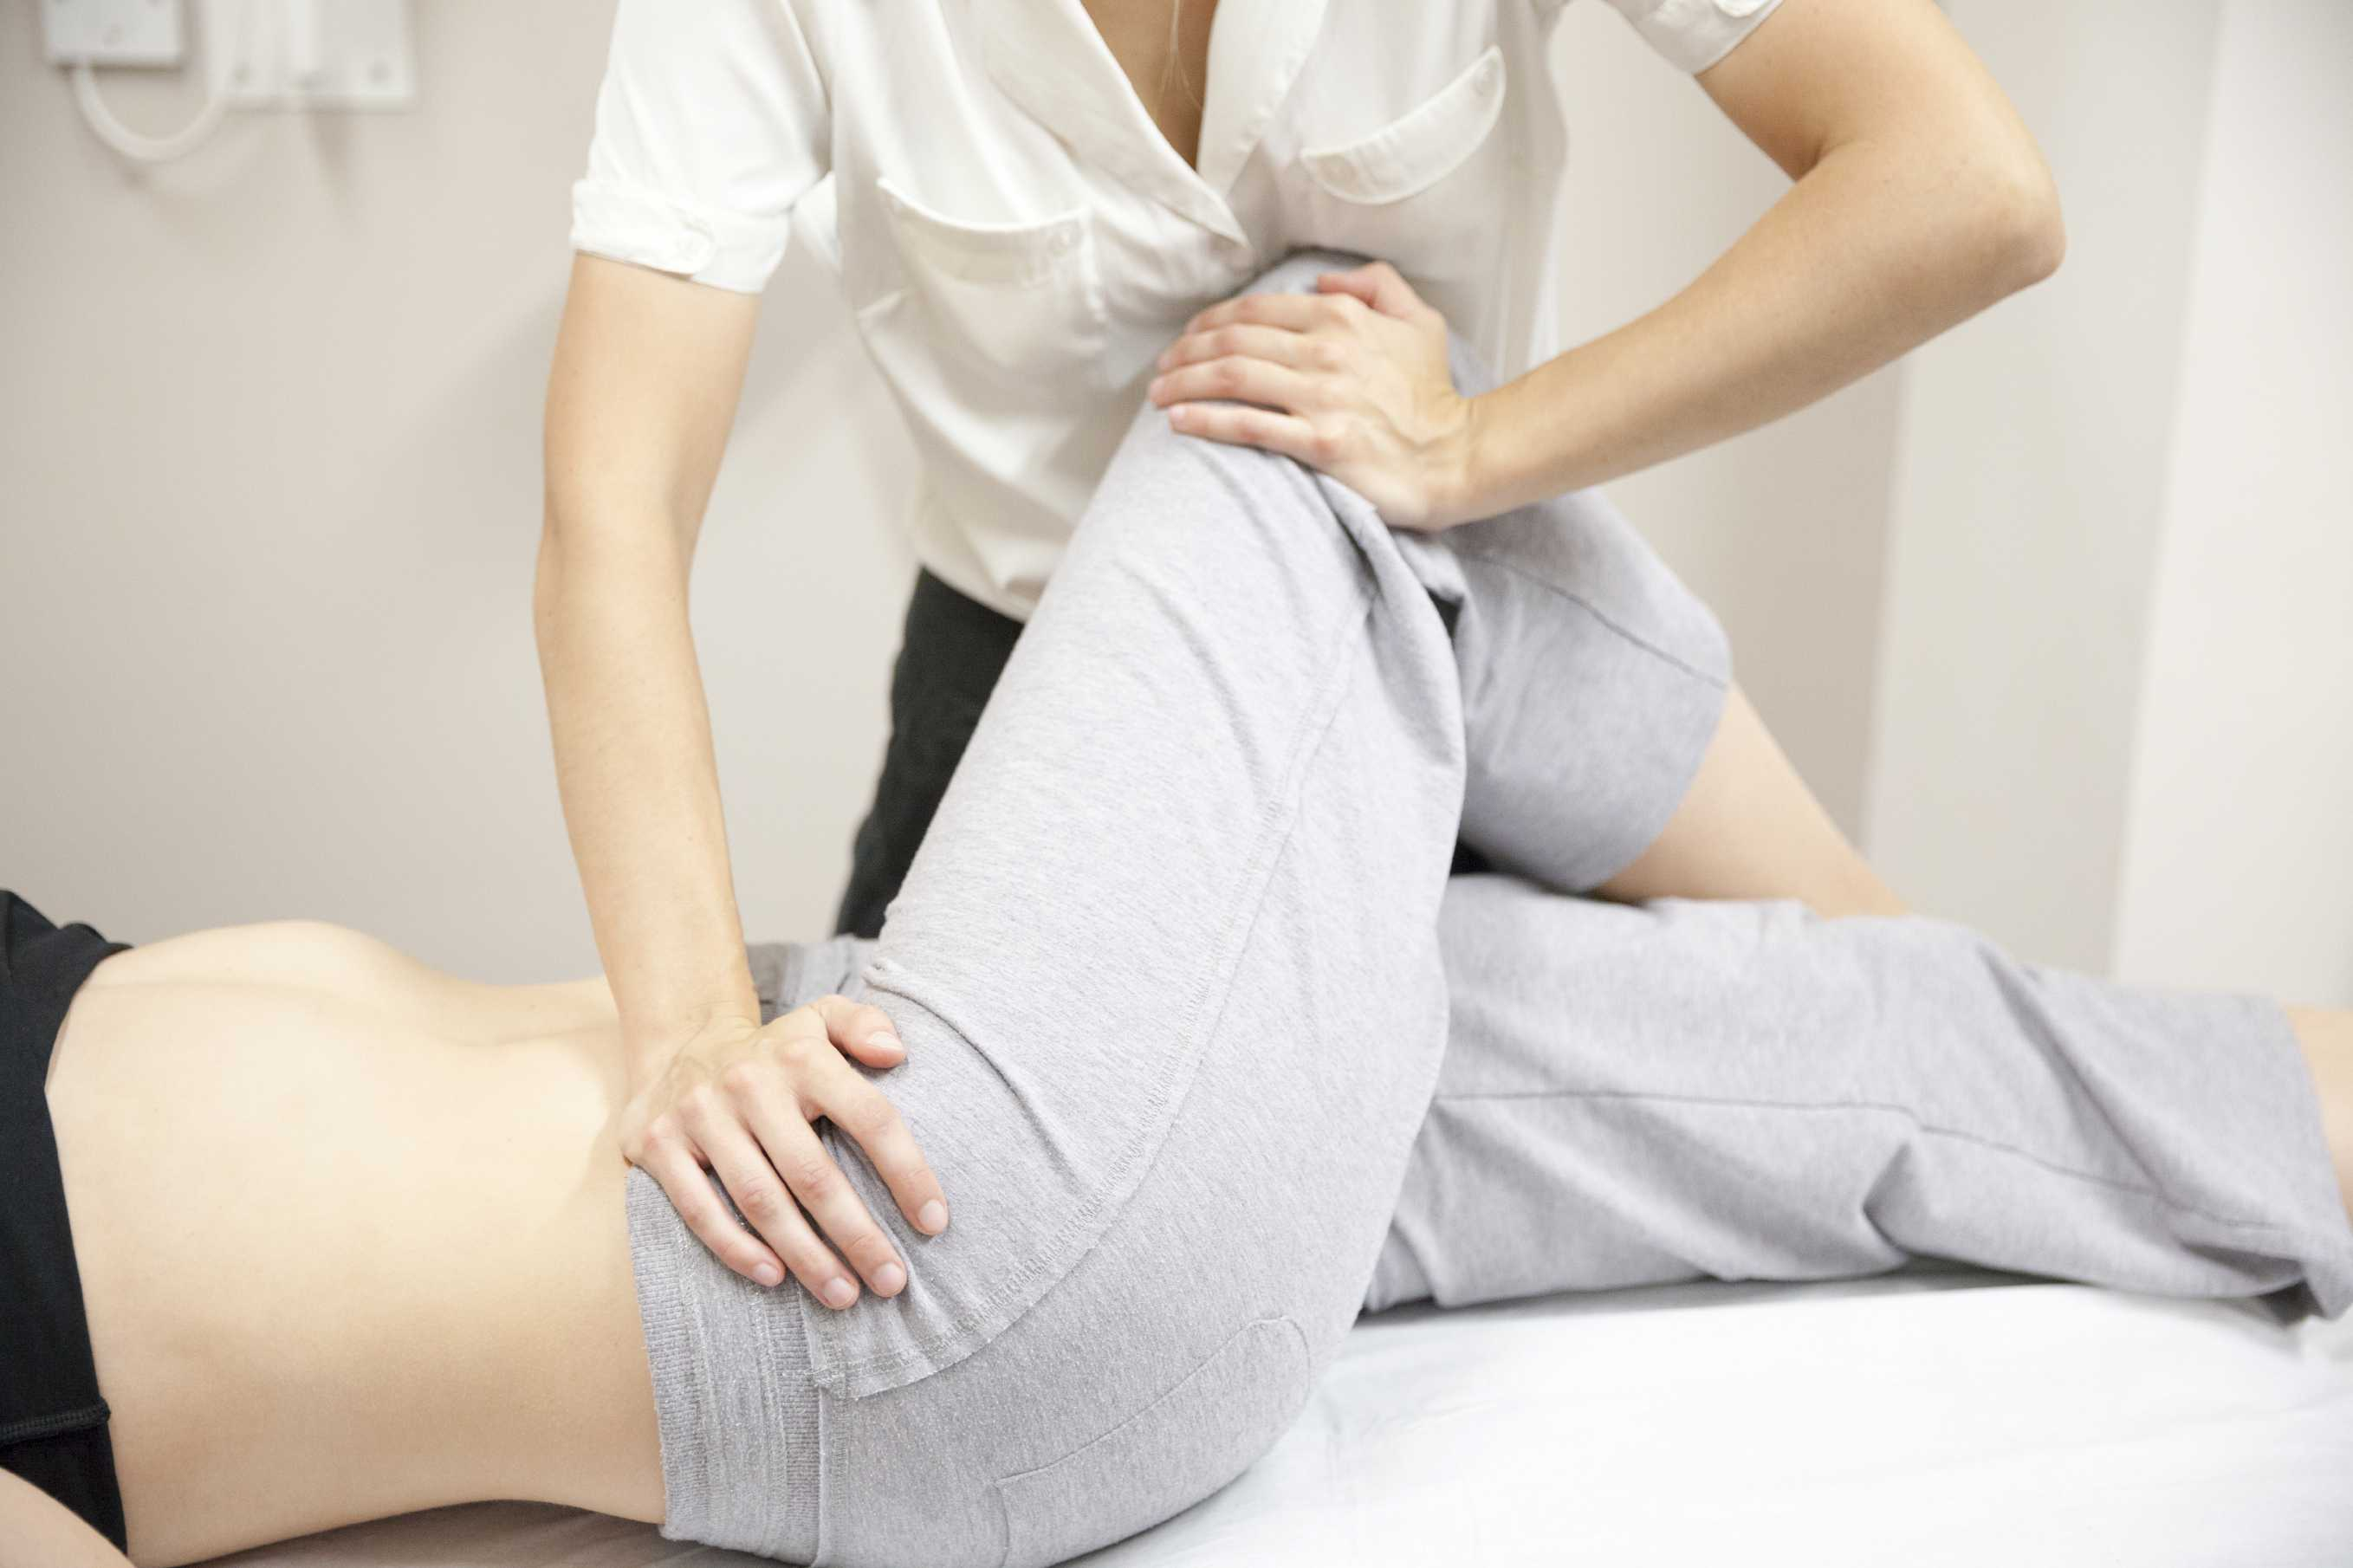 Woman having physio done on her leg/hip